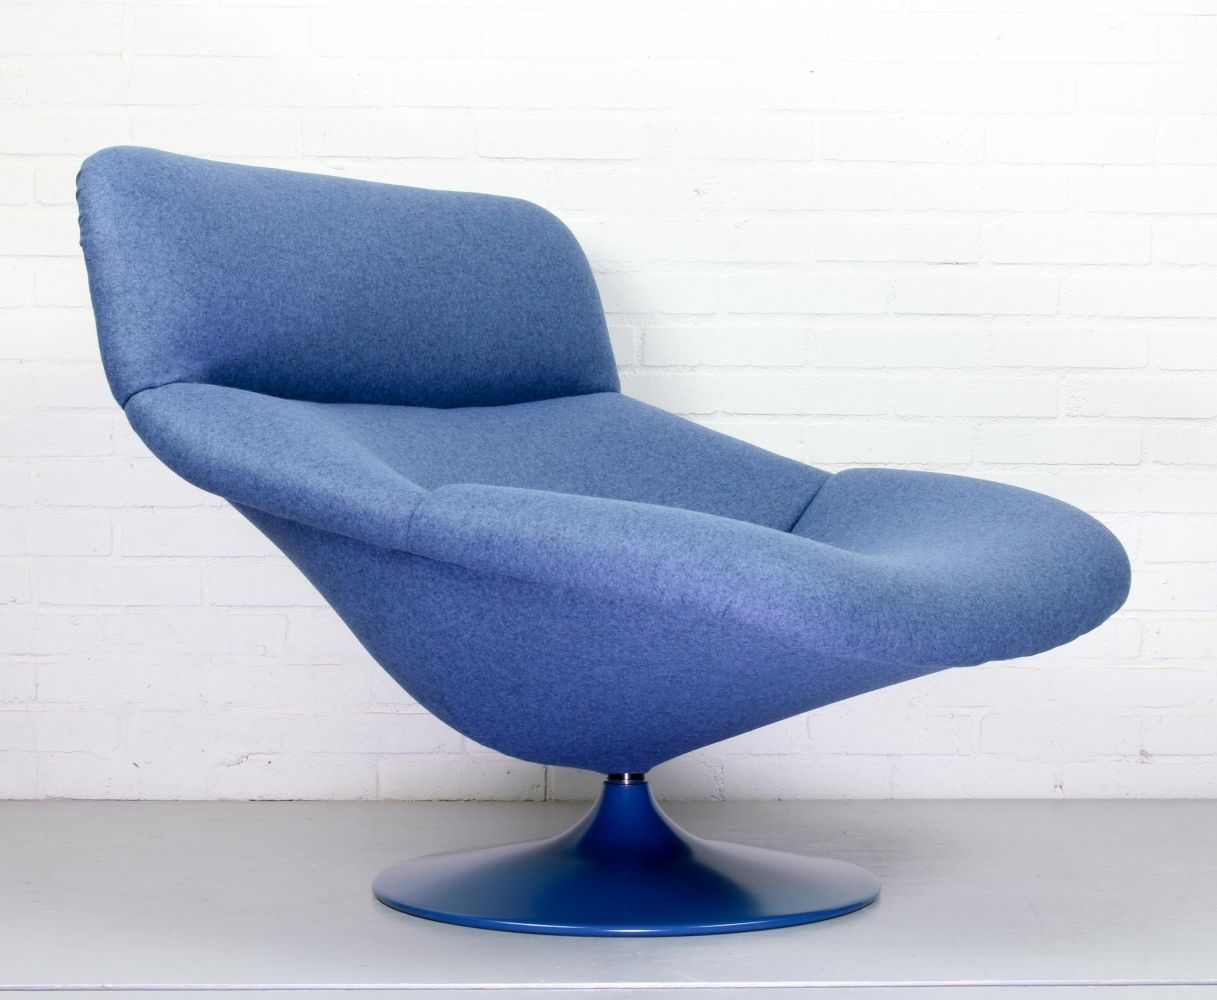 For Sale Vintage F518 Lounge Swivel Chair By Geoffrey Harcourt